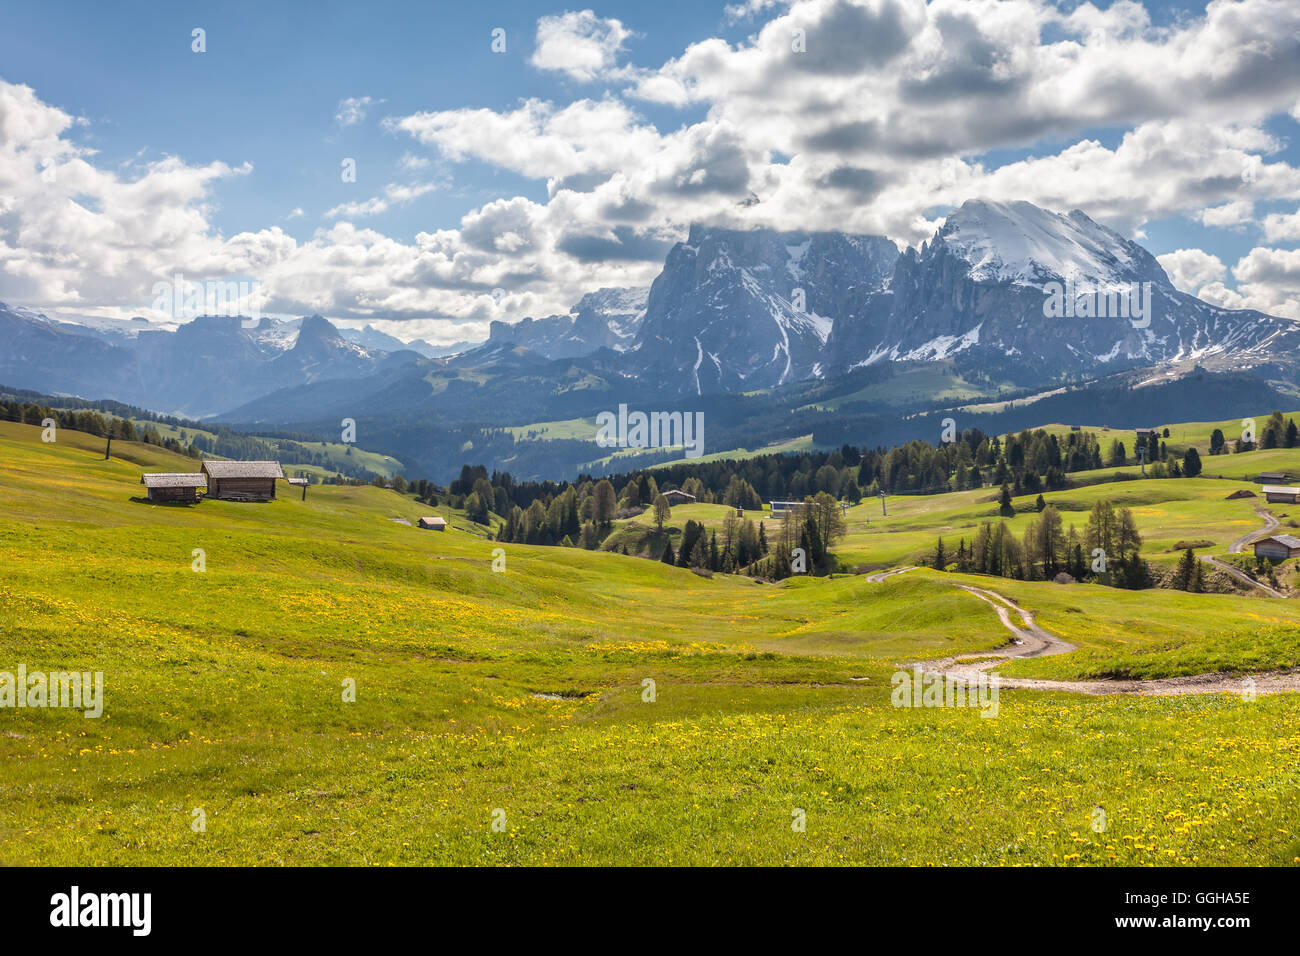 geography / travel, Italy, South Tyrol, Alm on the Seiser mountain pasture with view to the Plattkofel, Additional - Stock Image